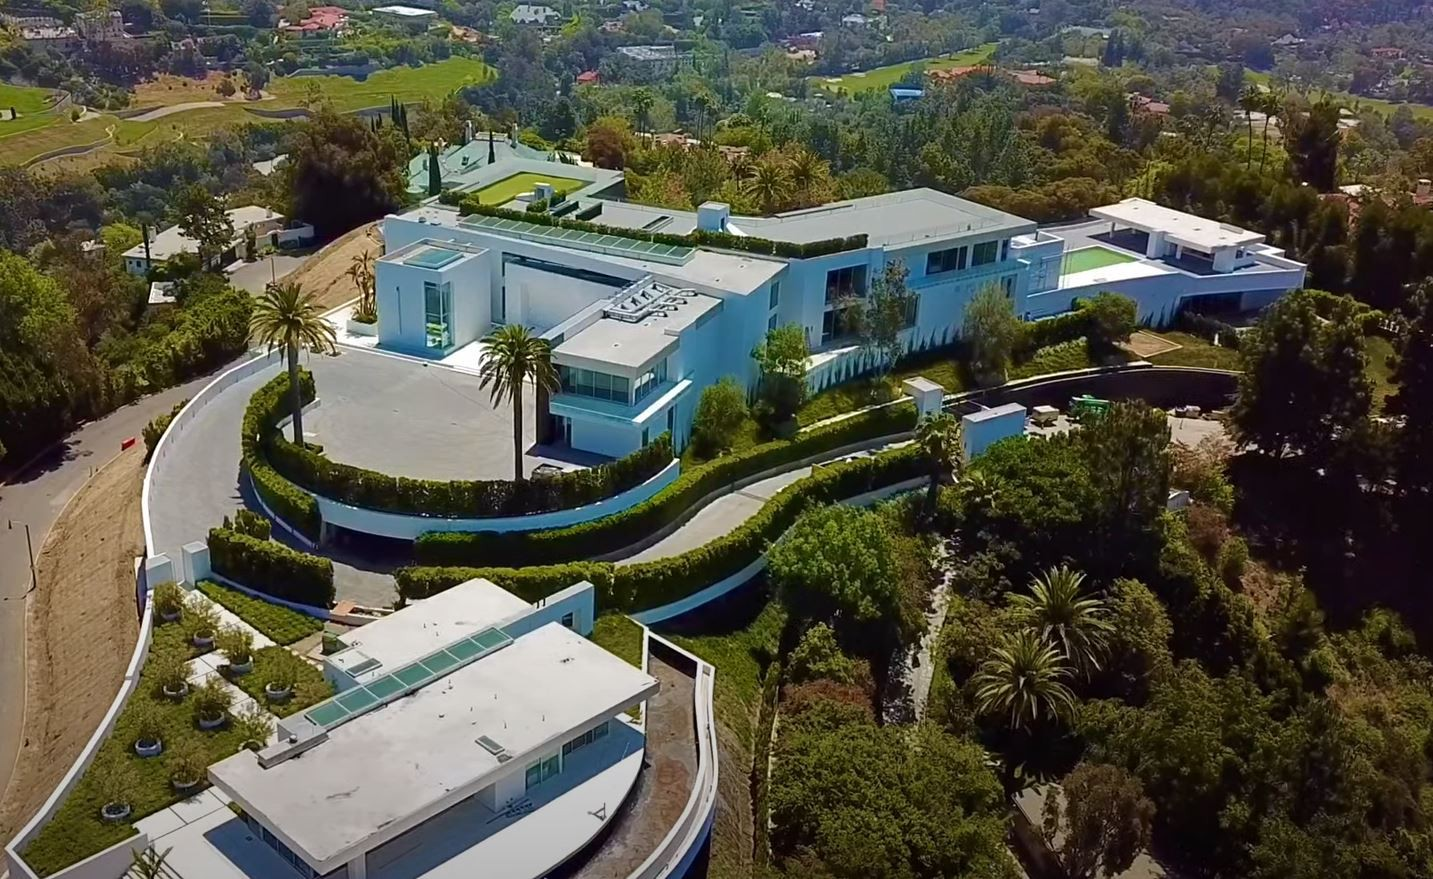 The One mansion